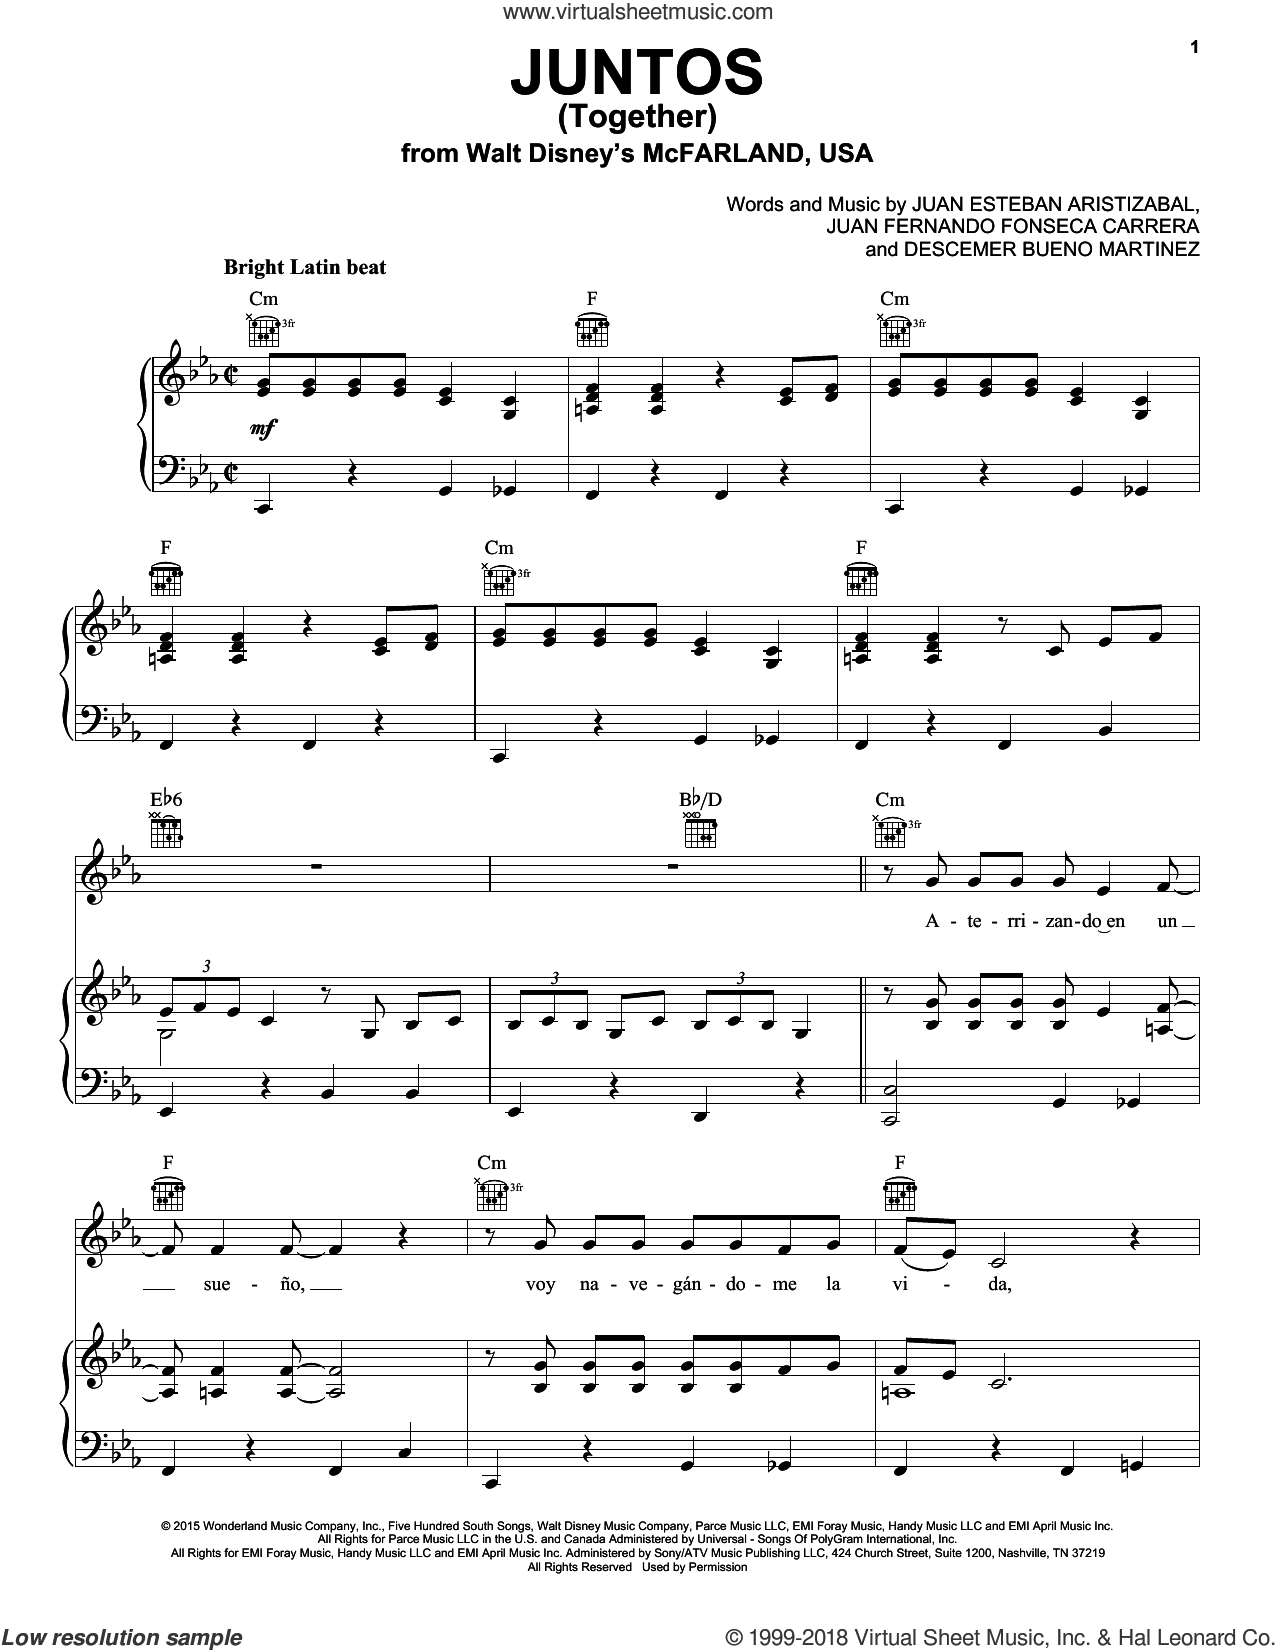 Juntos (Together) sheet music for voice, piano or guitar by Juanes, Descemer Bueno Martinez, Juan Esteban Aristizabal and Juan Fernando Fonseca Carrera, intermediate